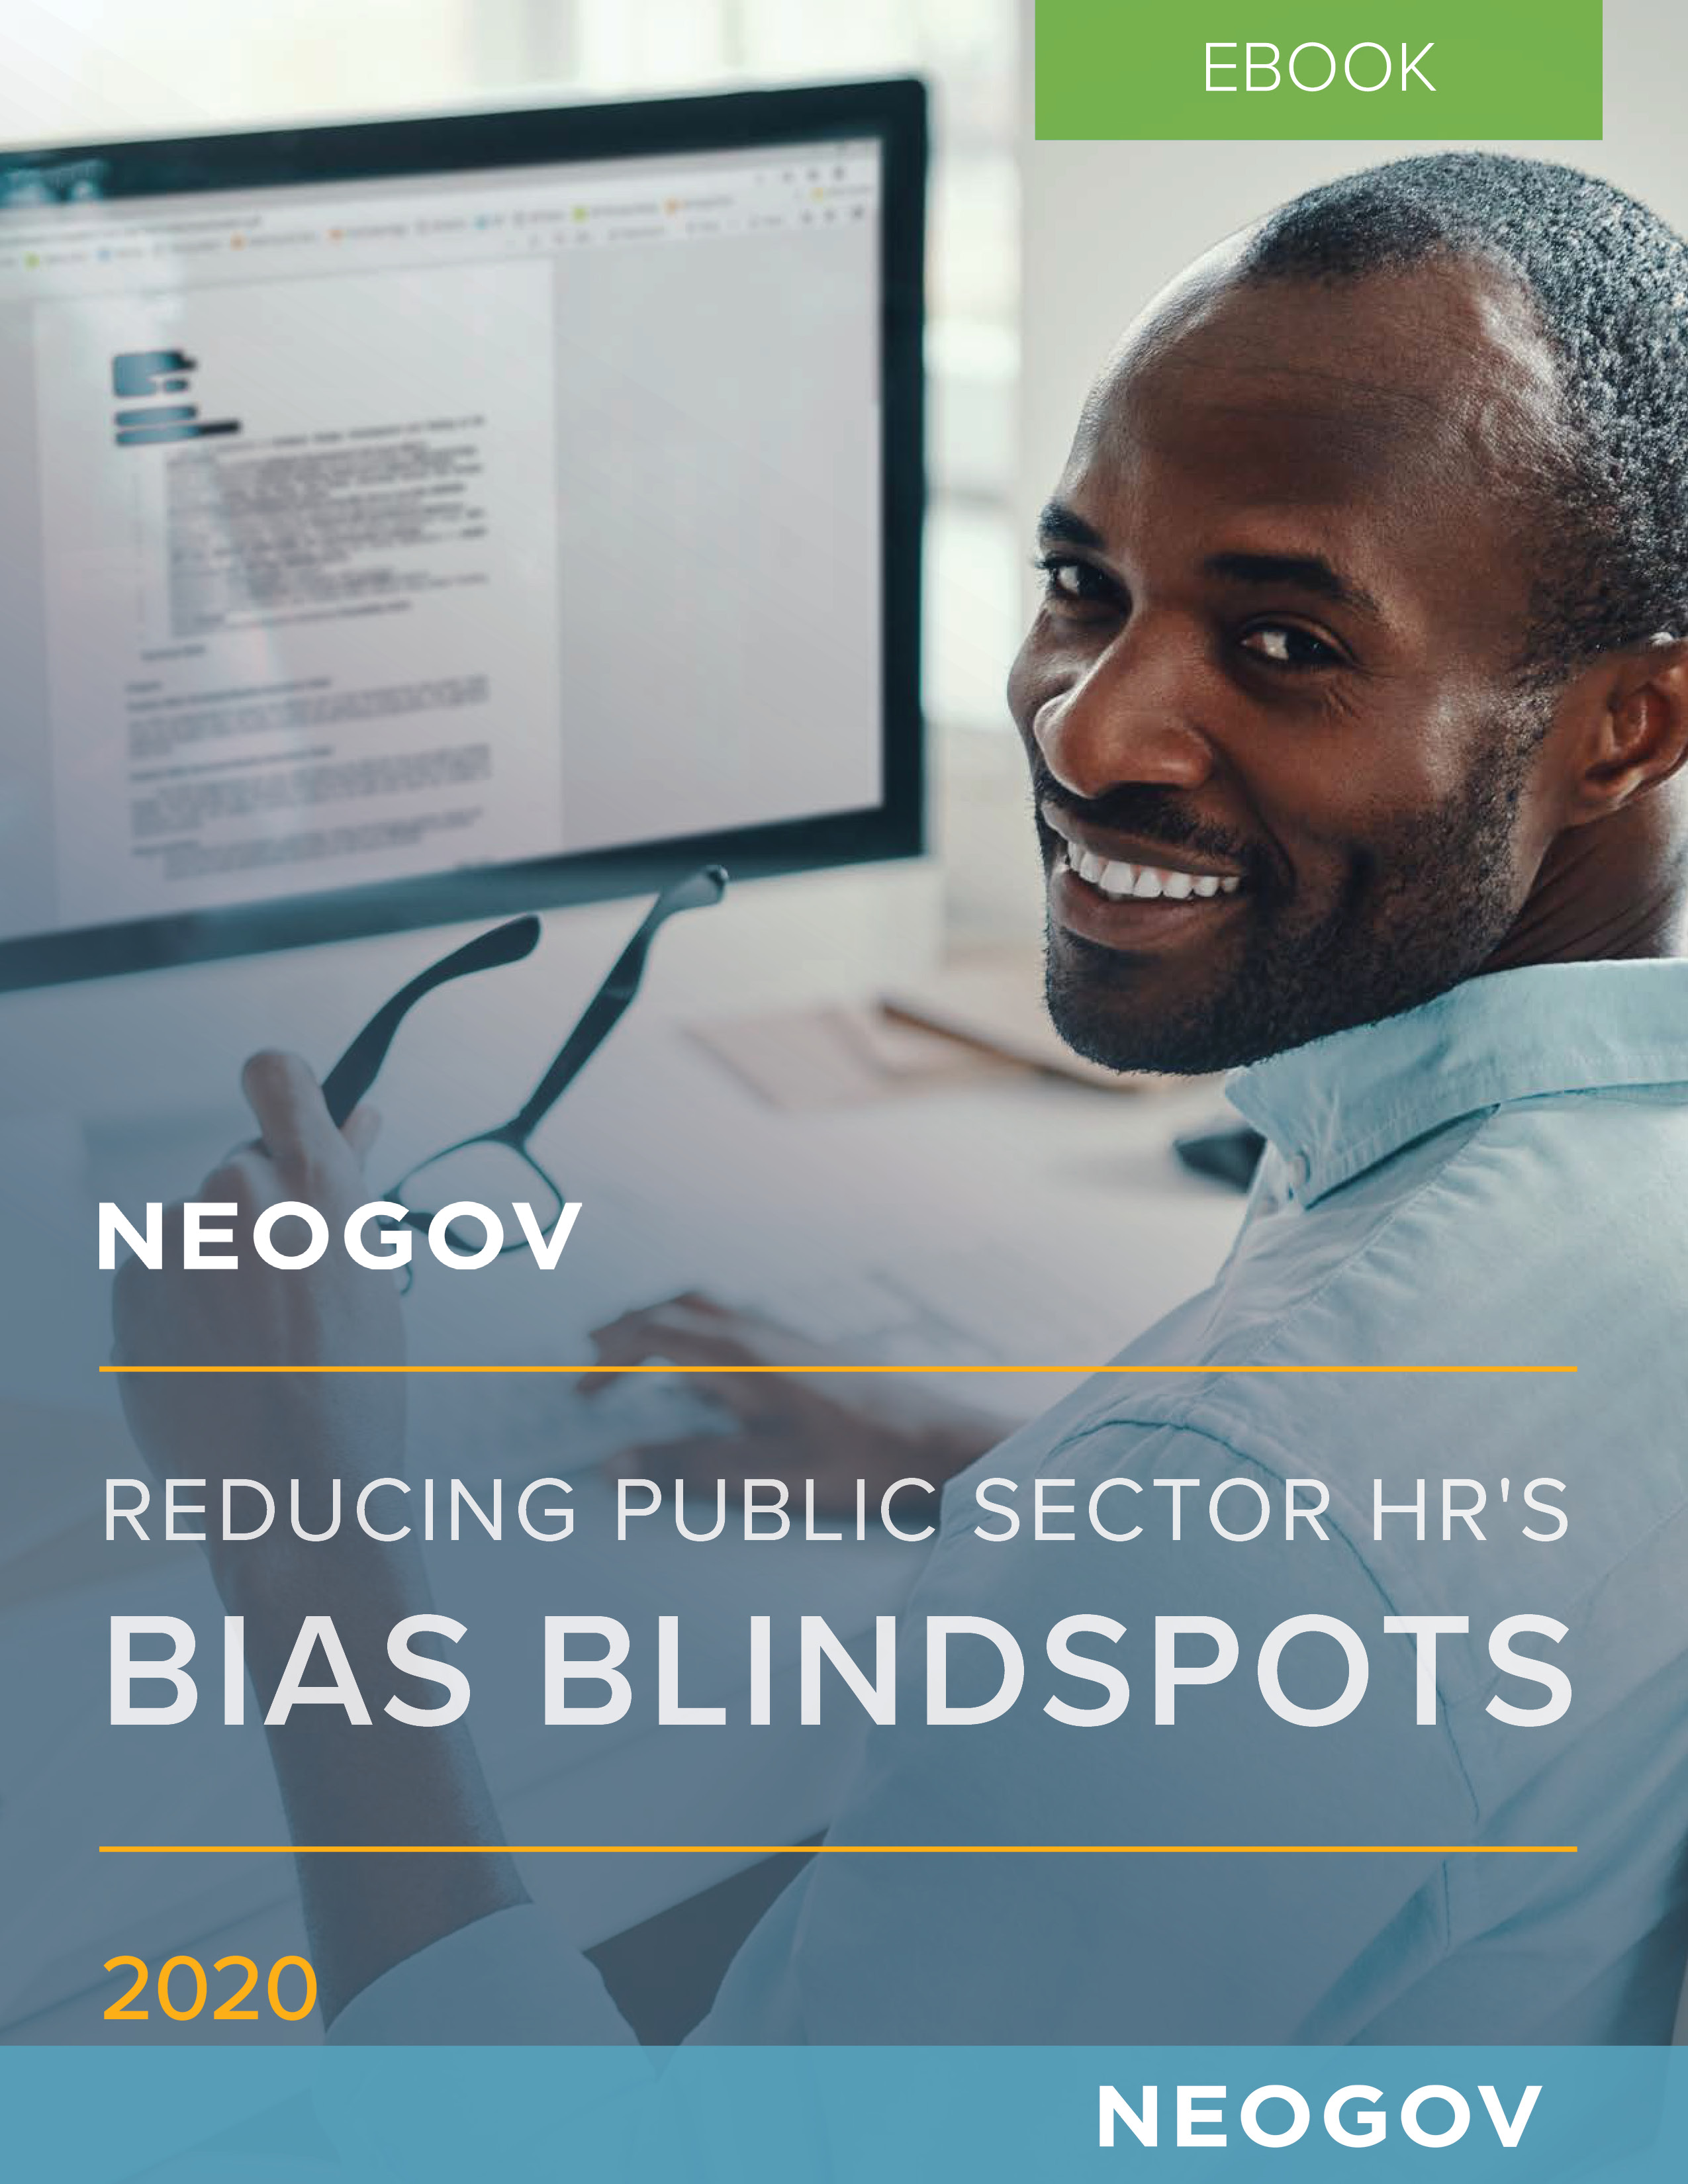 Bias Blindspots